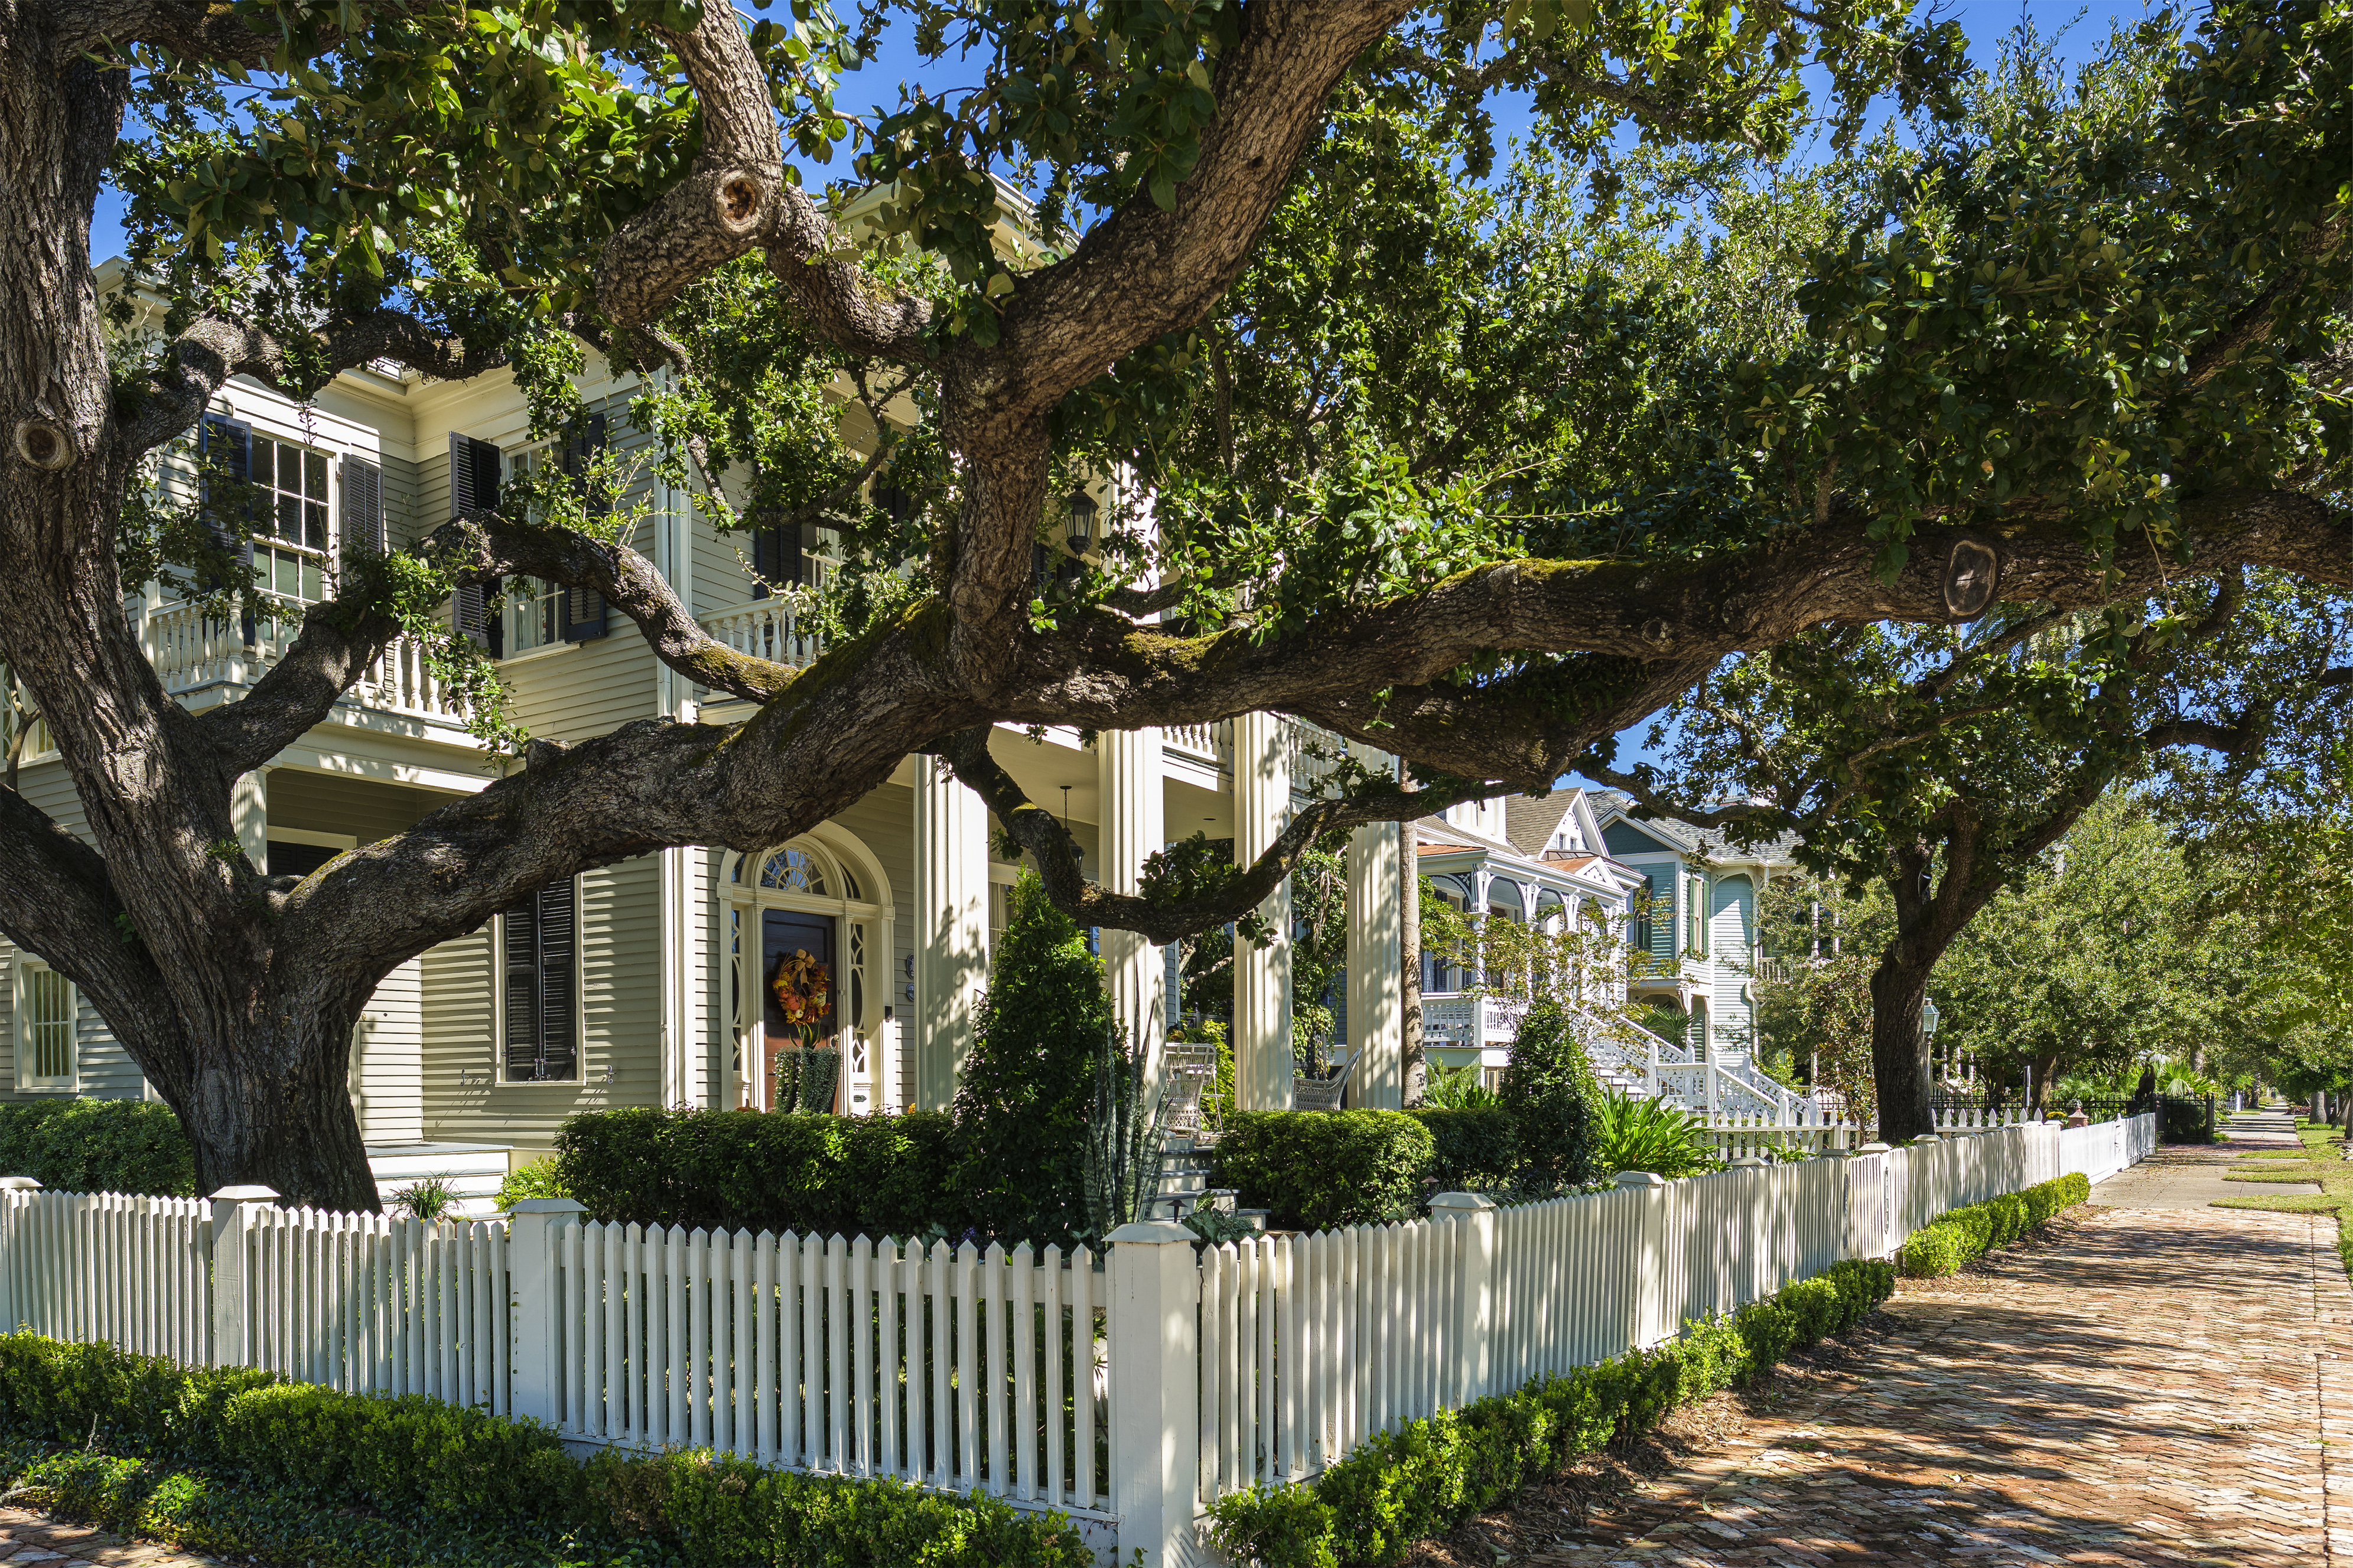 Galveston, Texas USA - November 3, 2019: The Silk Stocking Residential Historic District contains beautifully restored vintage homes of the Queen Anne architecture style.